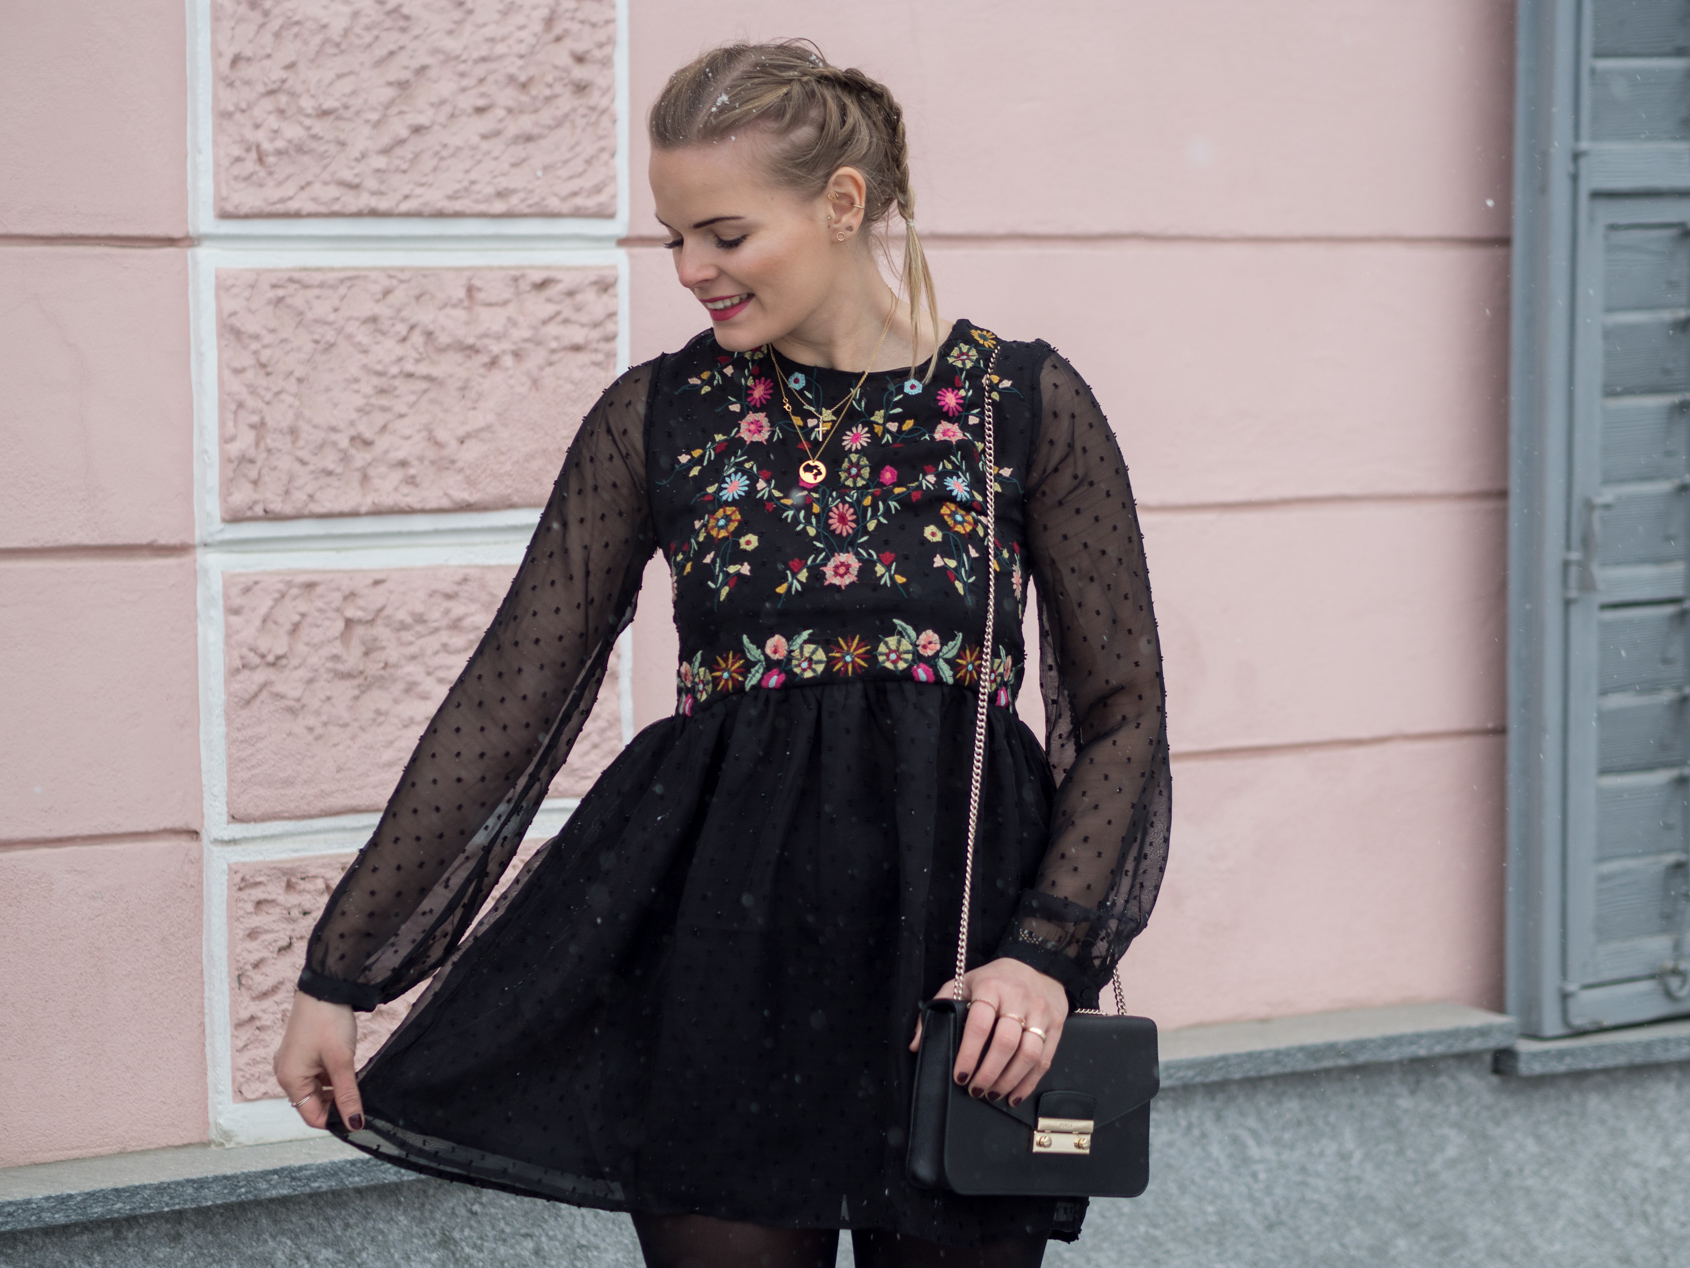 Little Black Dress, Outfit, Babydoll dress, fashion, Fashionblogger, schwarzes Kleid kombinieren, Klassisch, www.lakatyfox.com